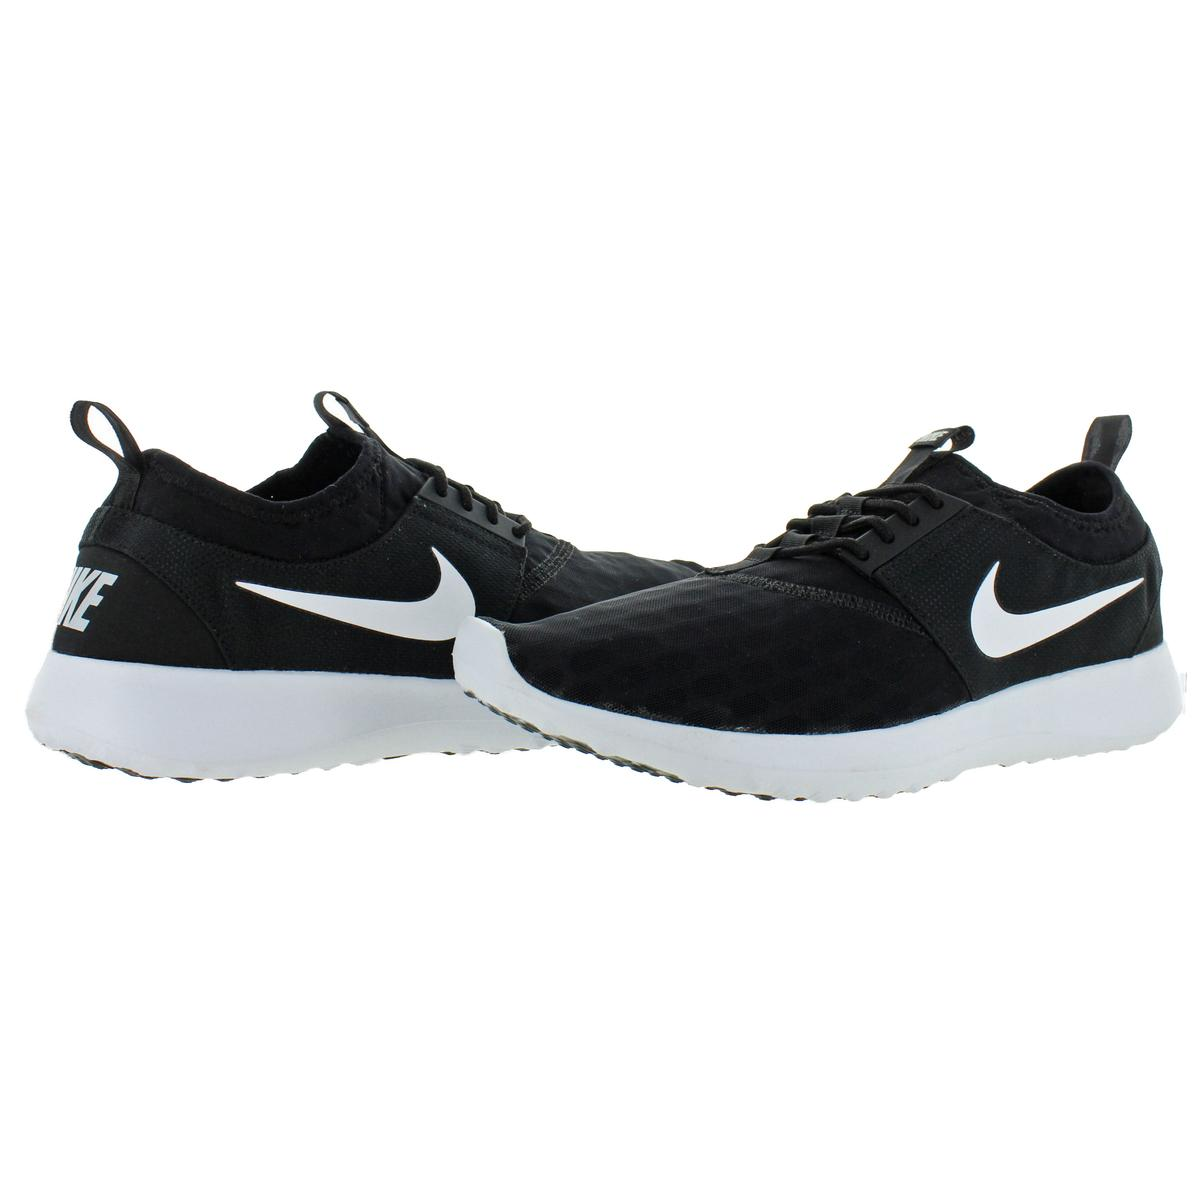 huge selection of 55e10 17e86 Nike-Womens-Juvenate-Training-Lightweight-Running-Shoes-Sneakers-